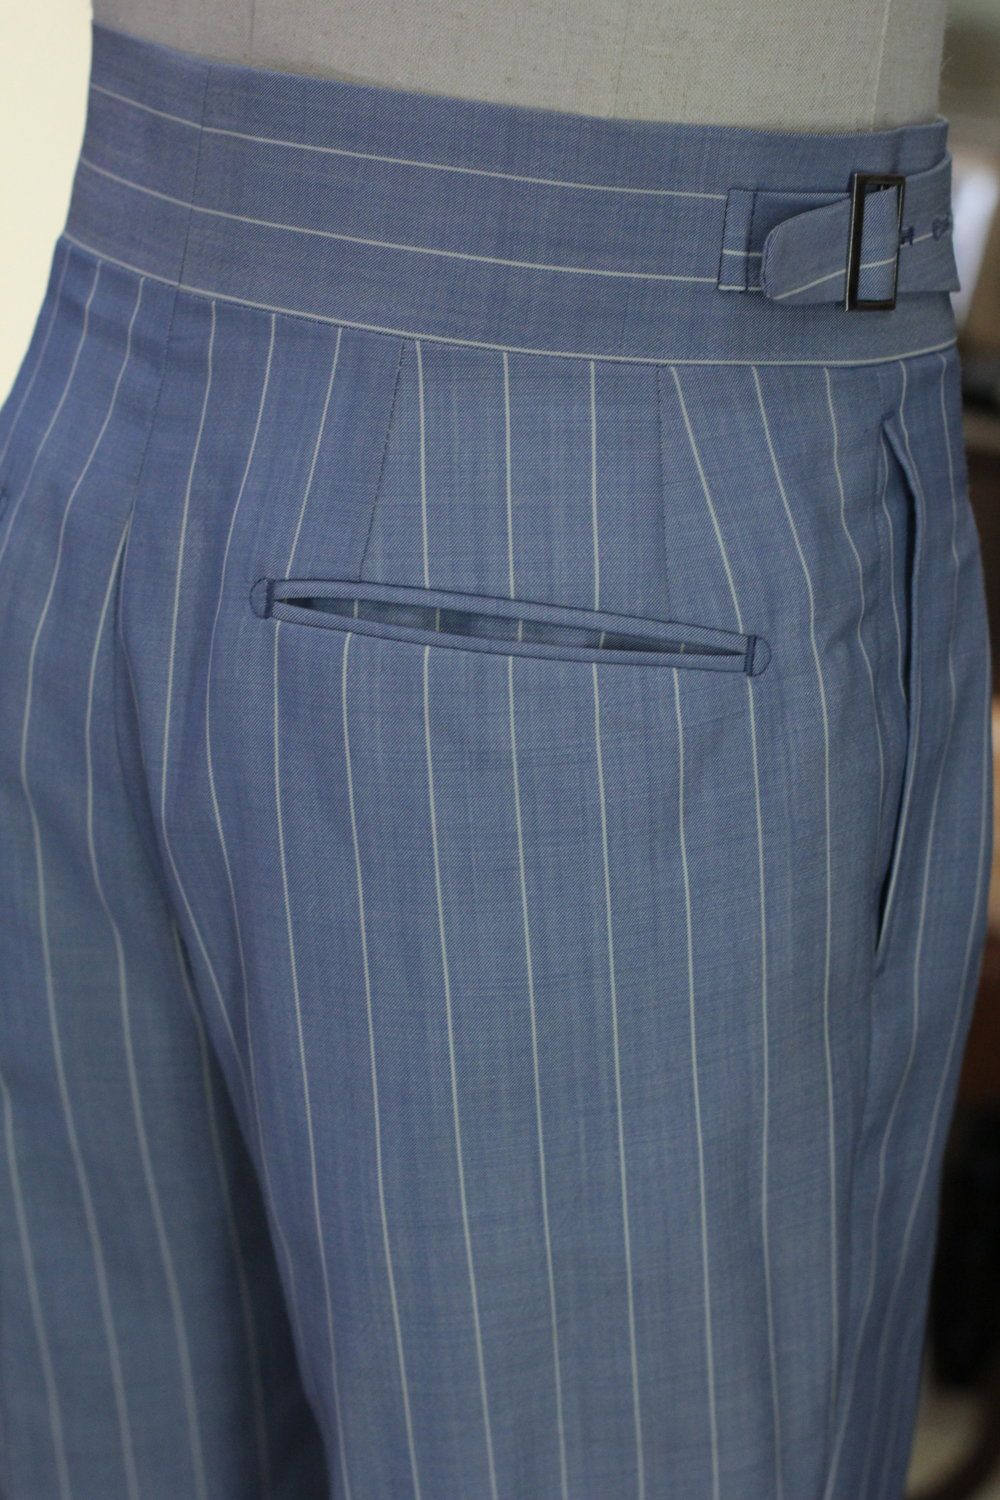 Back Pocket Made Suits Made to measure Gurkha Trousers Bespoke Pinstripe light blue English Mohair Holland & Sherry.JPG